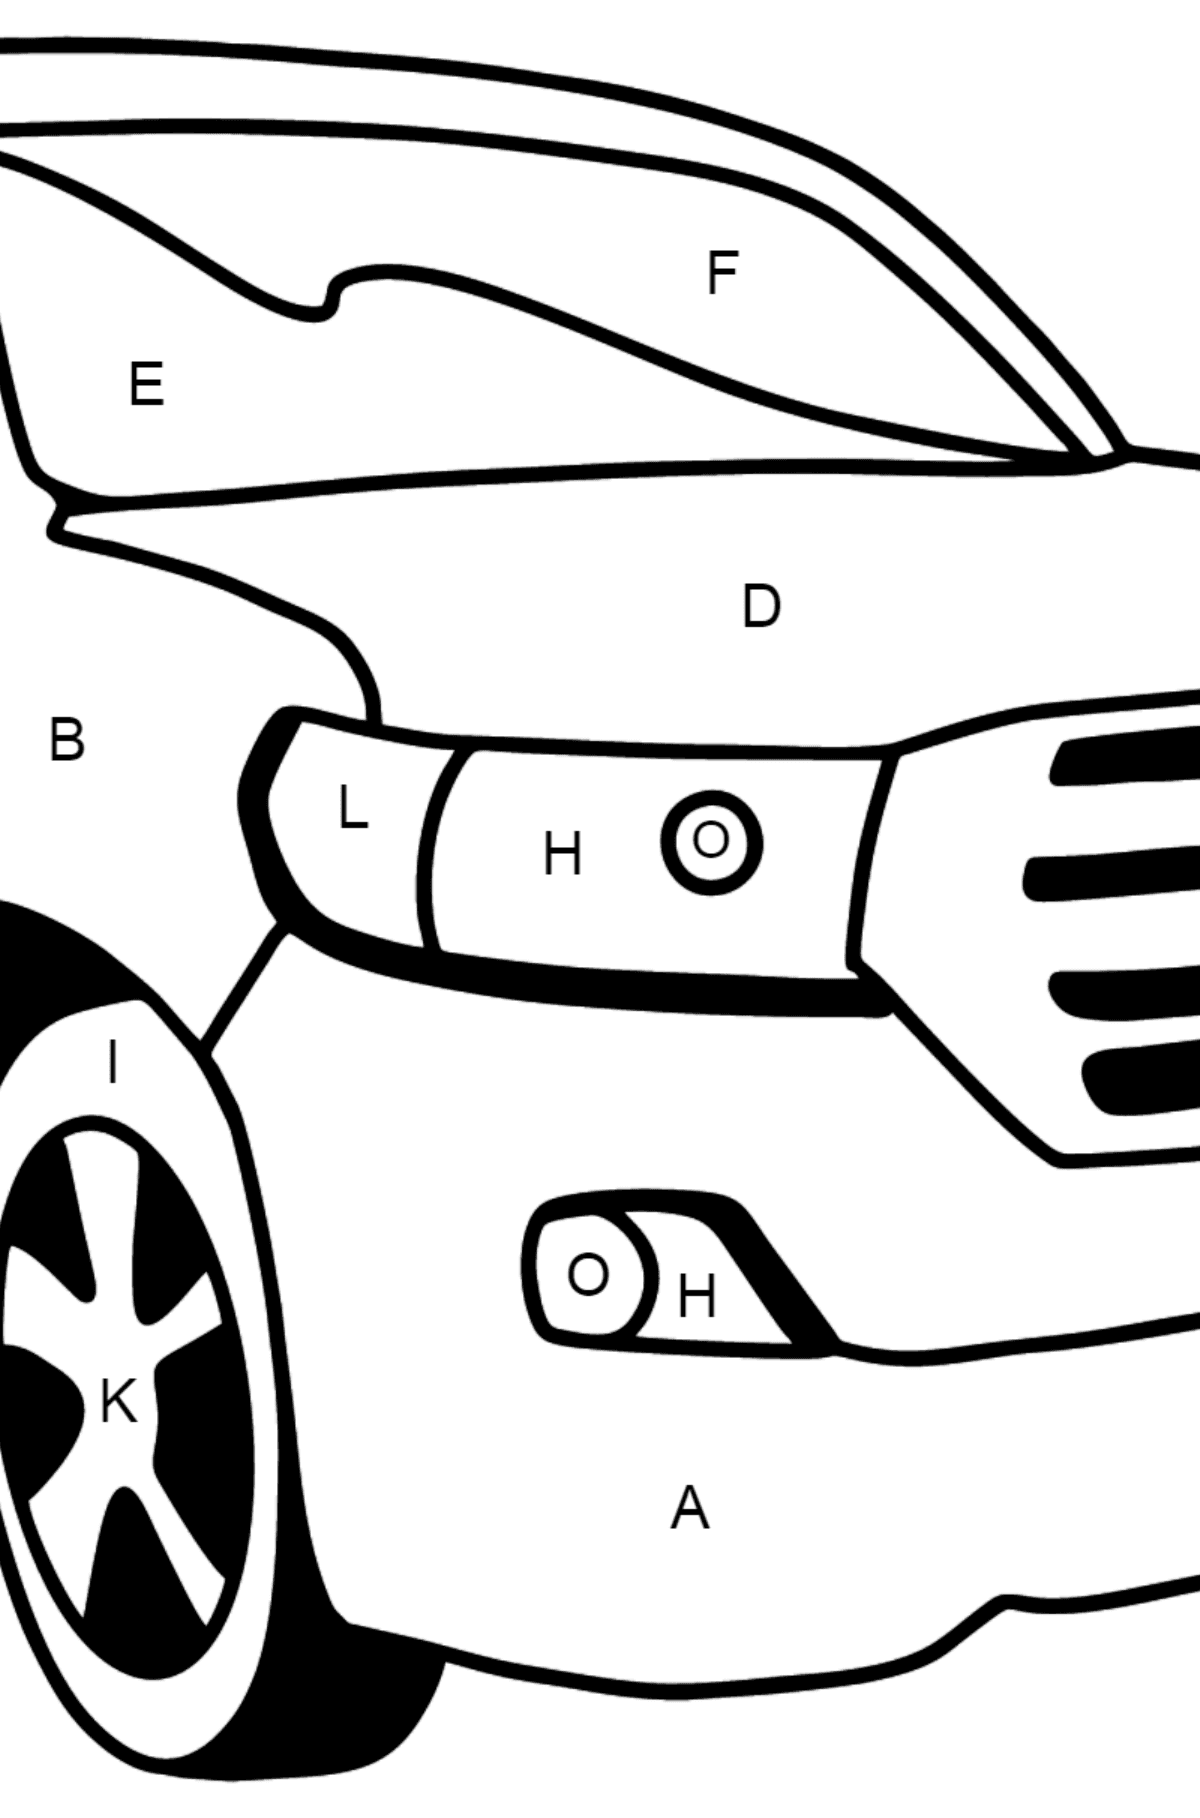 Toyota Land Cruiser Car coloring page - Coloring by Letters for Kids